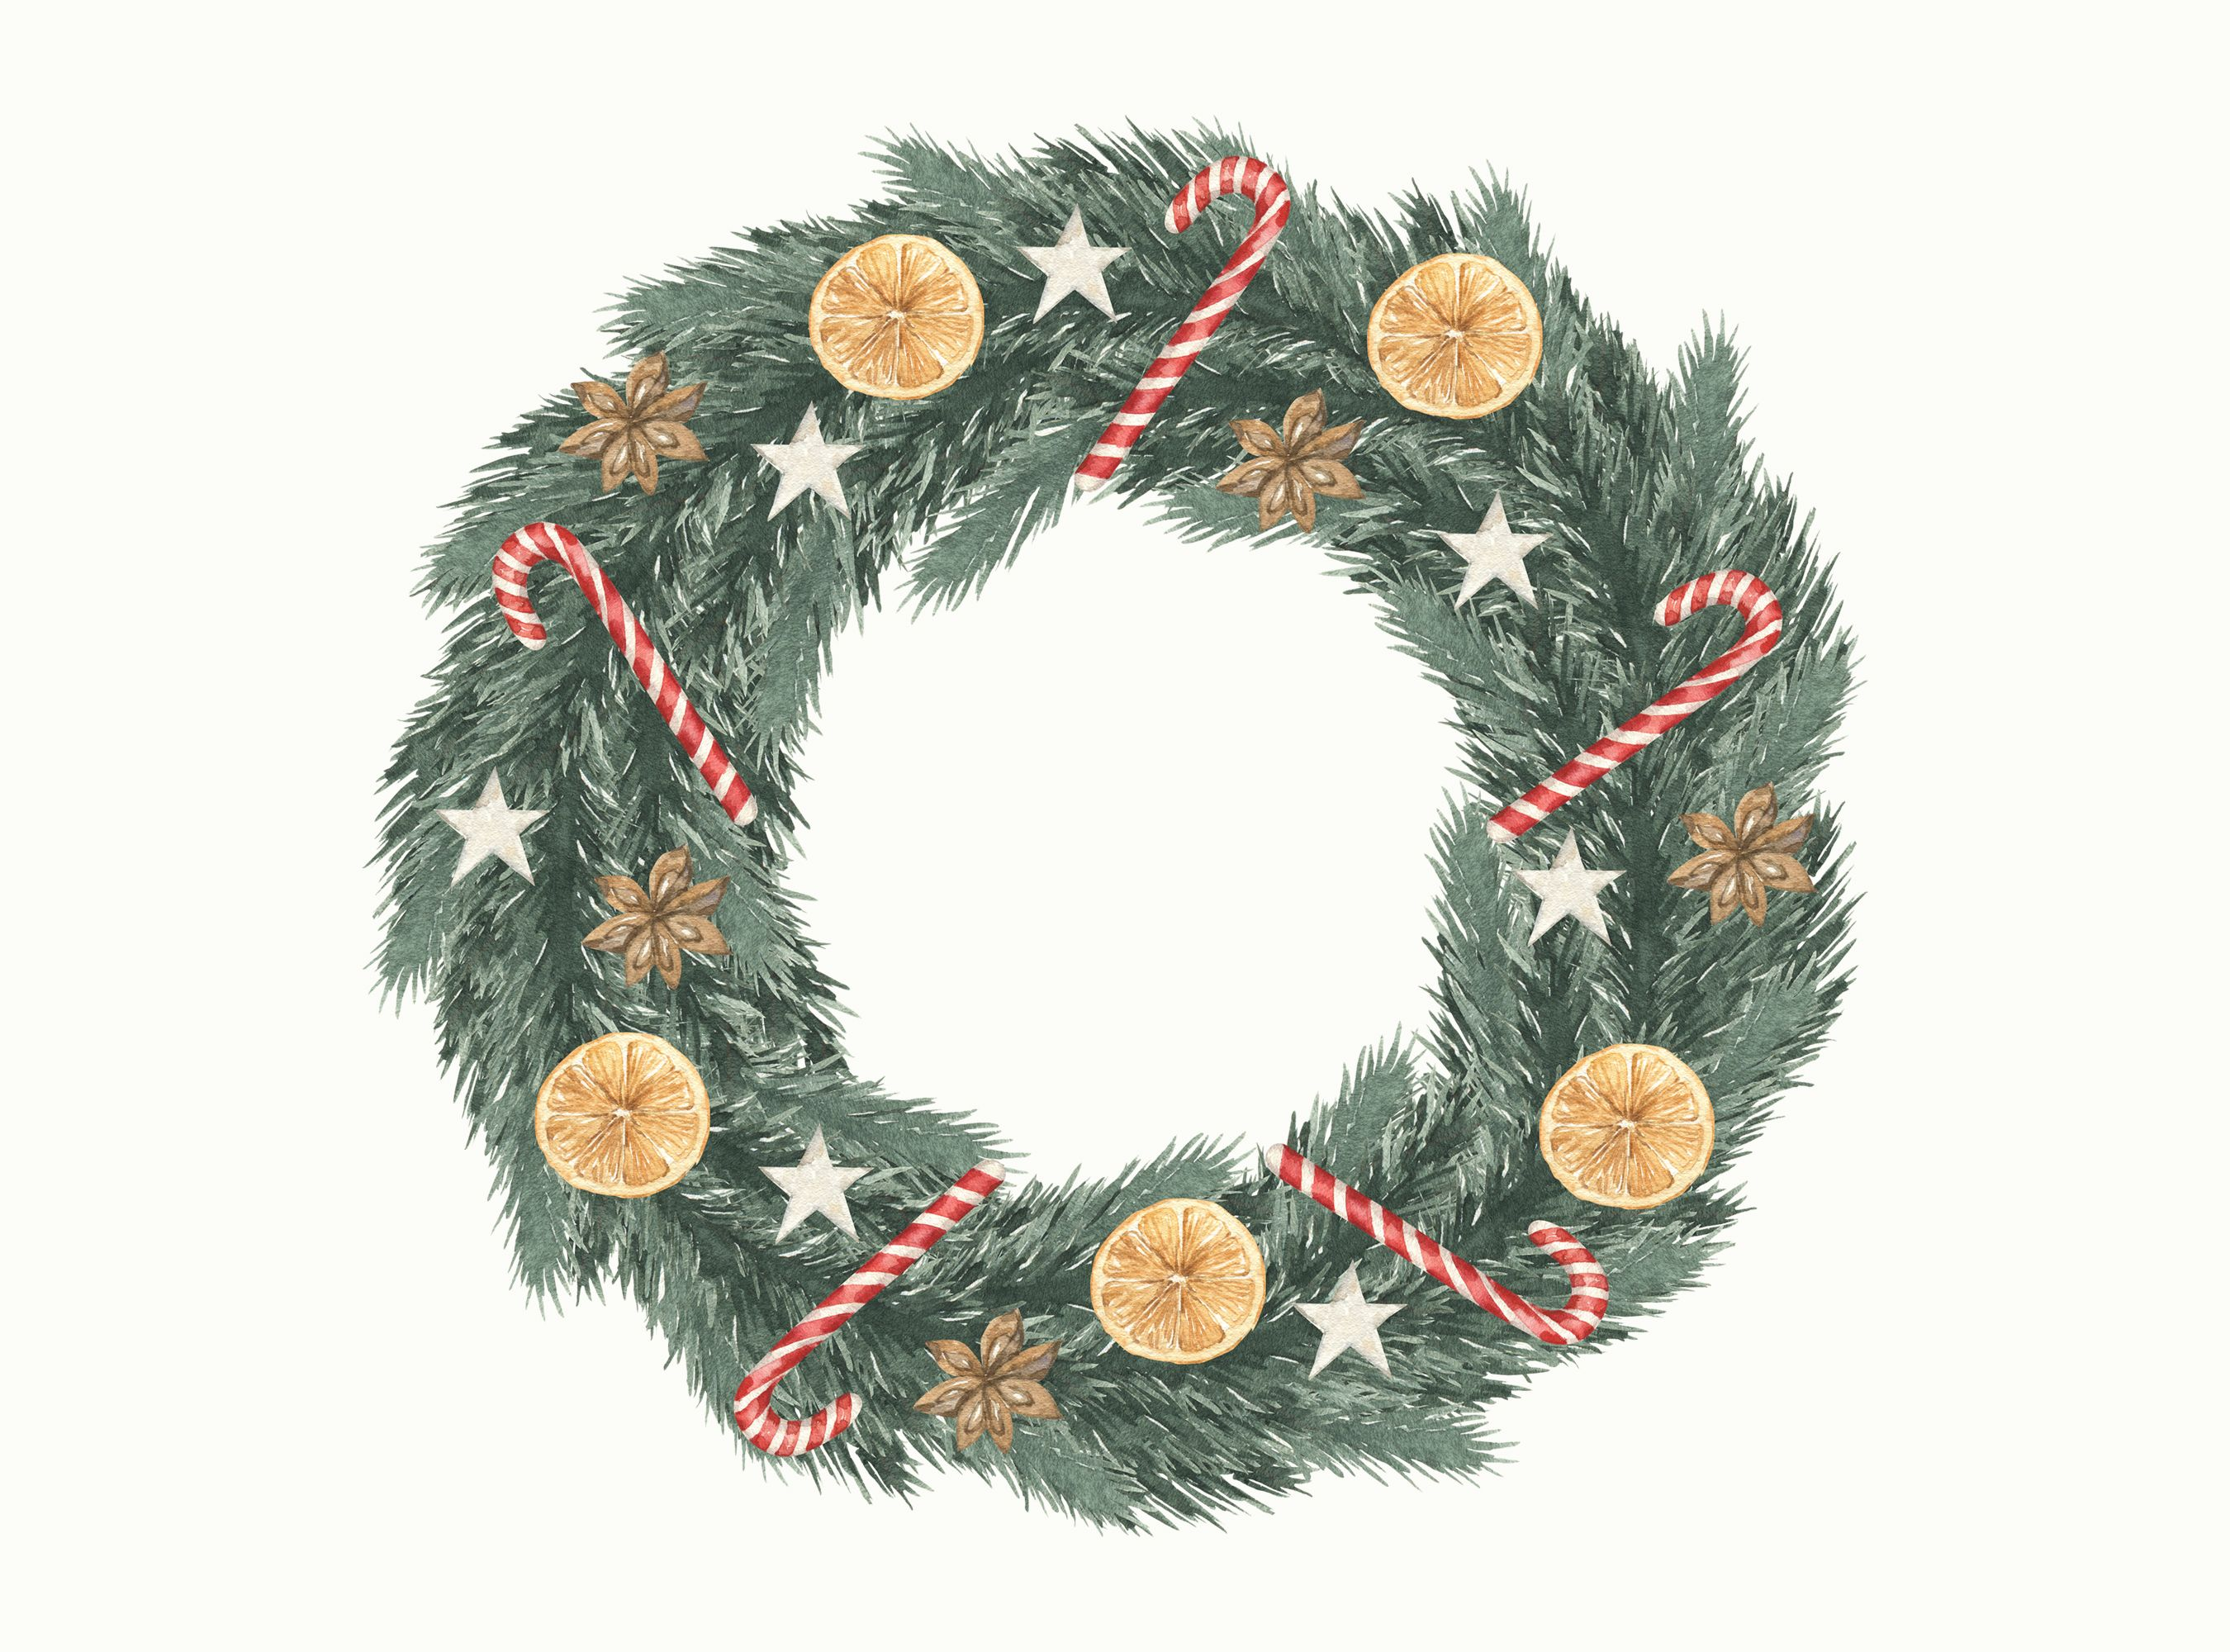 Watercolor Christmas Greenery Pine Twig Wreath Orange Candy Aniseed Floral Winter Clipart Png In 2020 Christmas Watercolor Christmas Greenery Christmas Wreaths